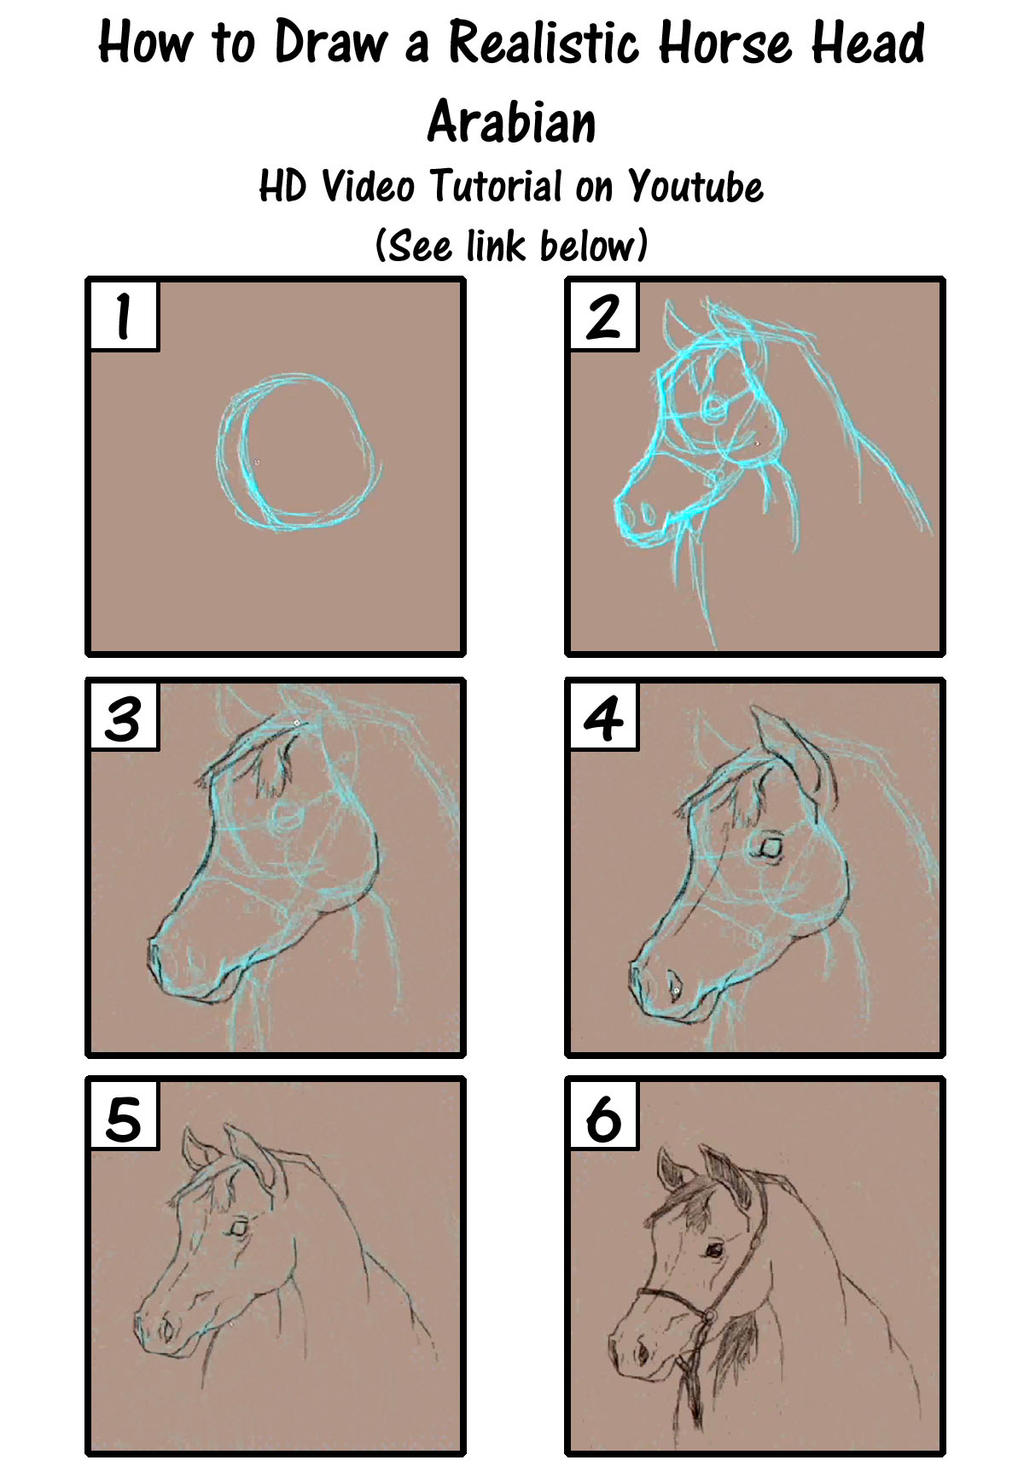 How To Draw A Horse Head How to Draw a R...